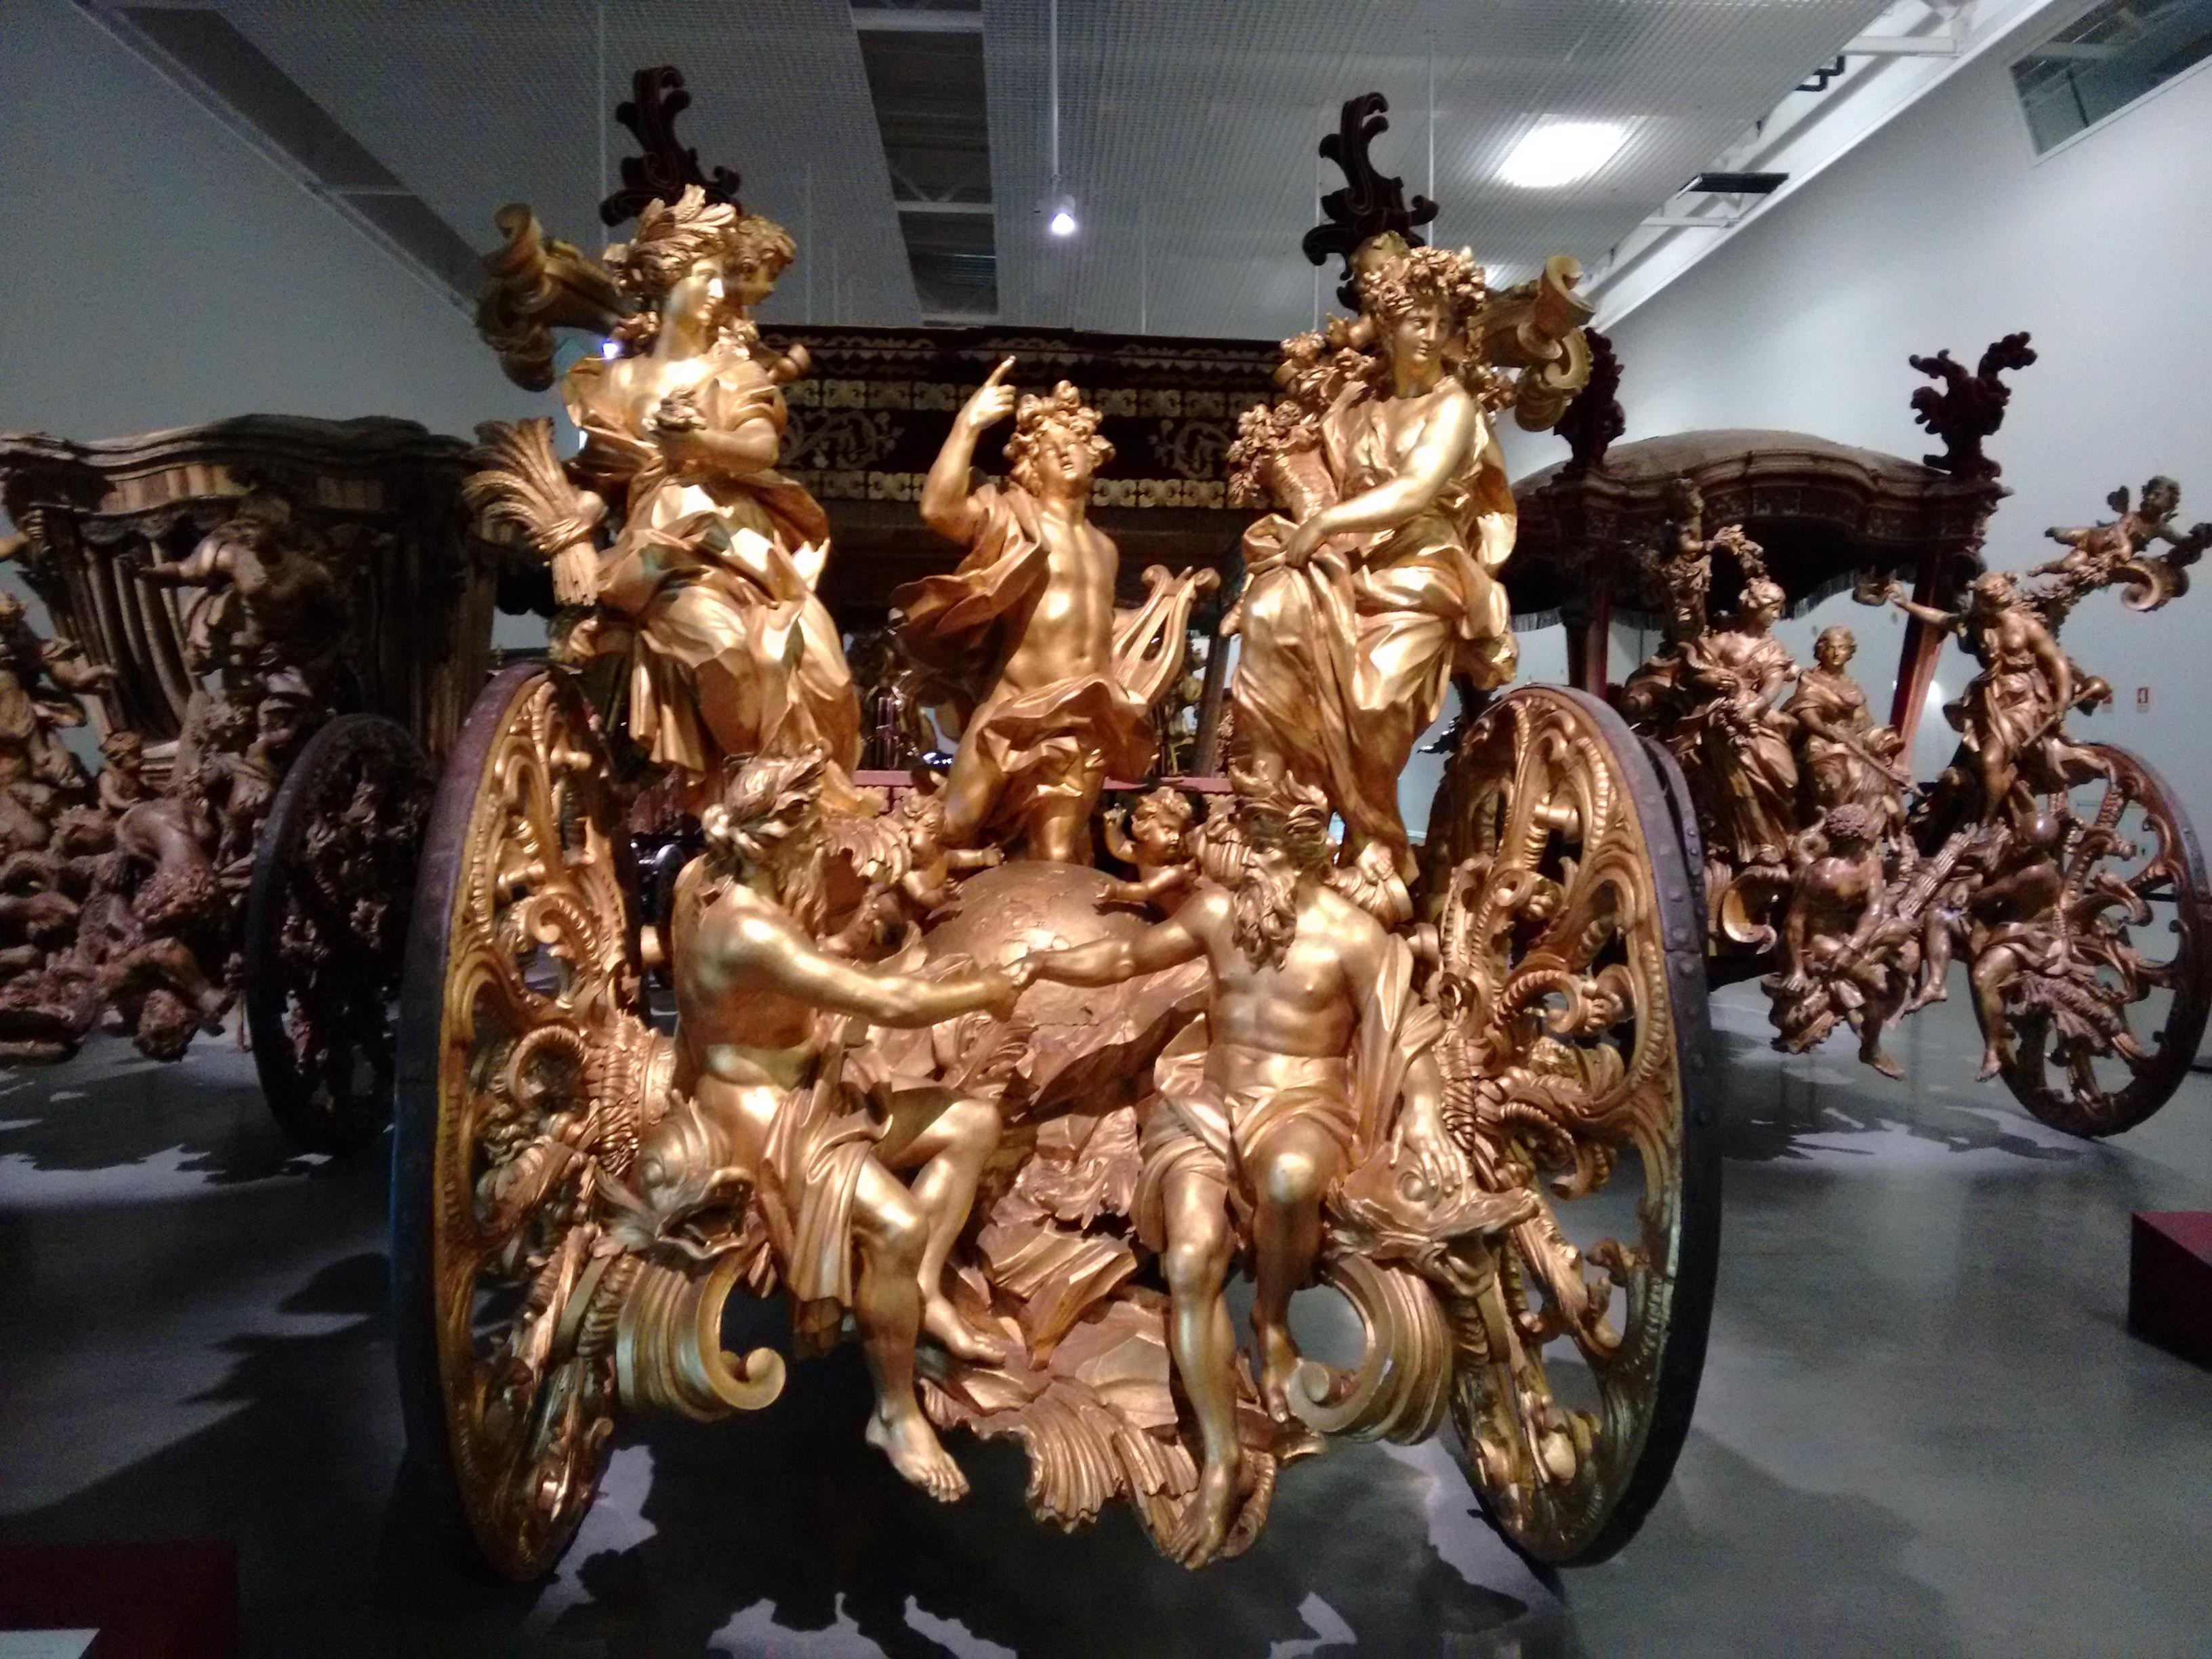 Exquisitely handcrafted gilded wood sculpture on carriage sent on Embassy to Pope Clement XI in 1716